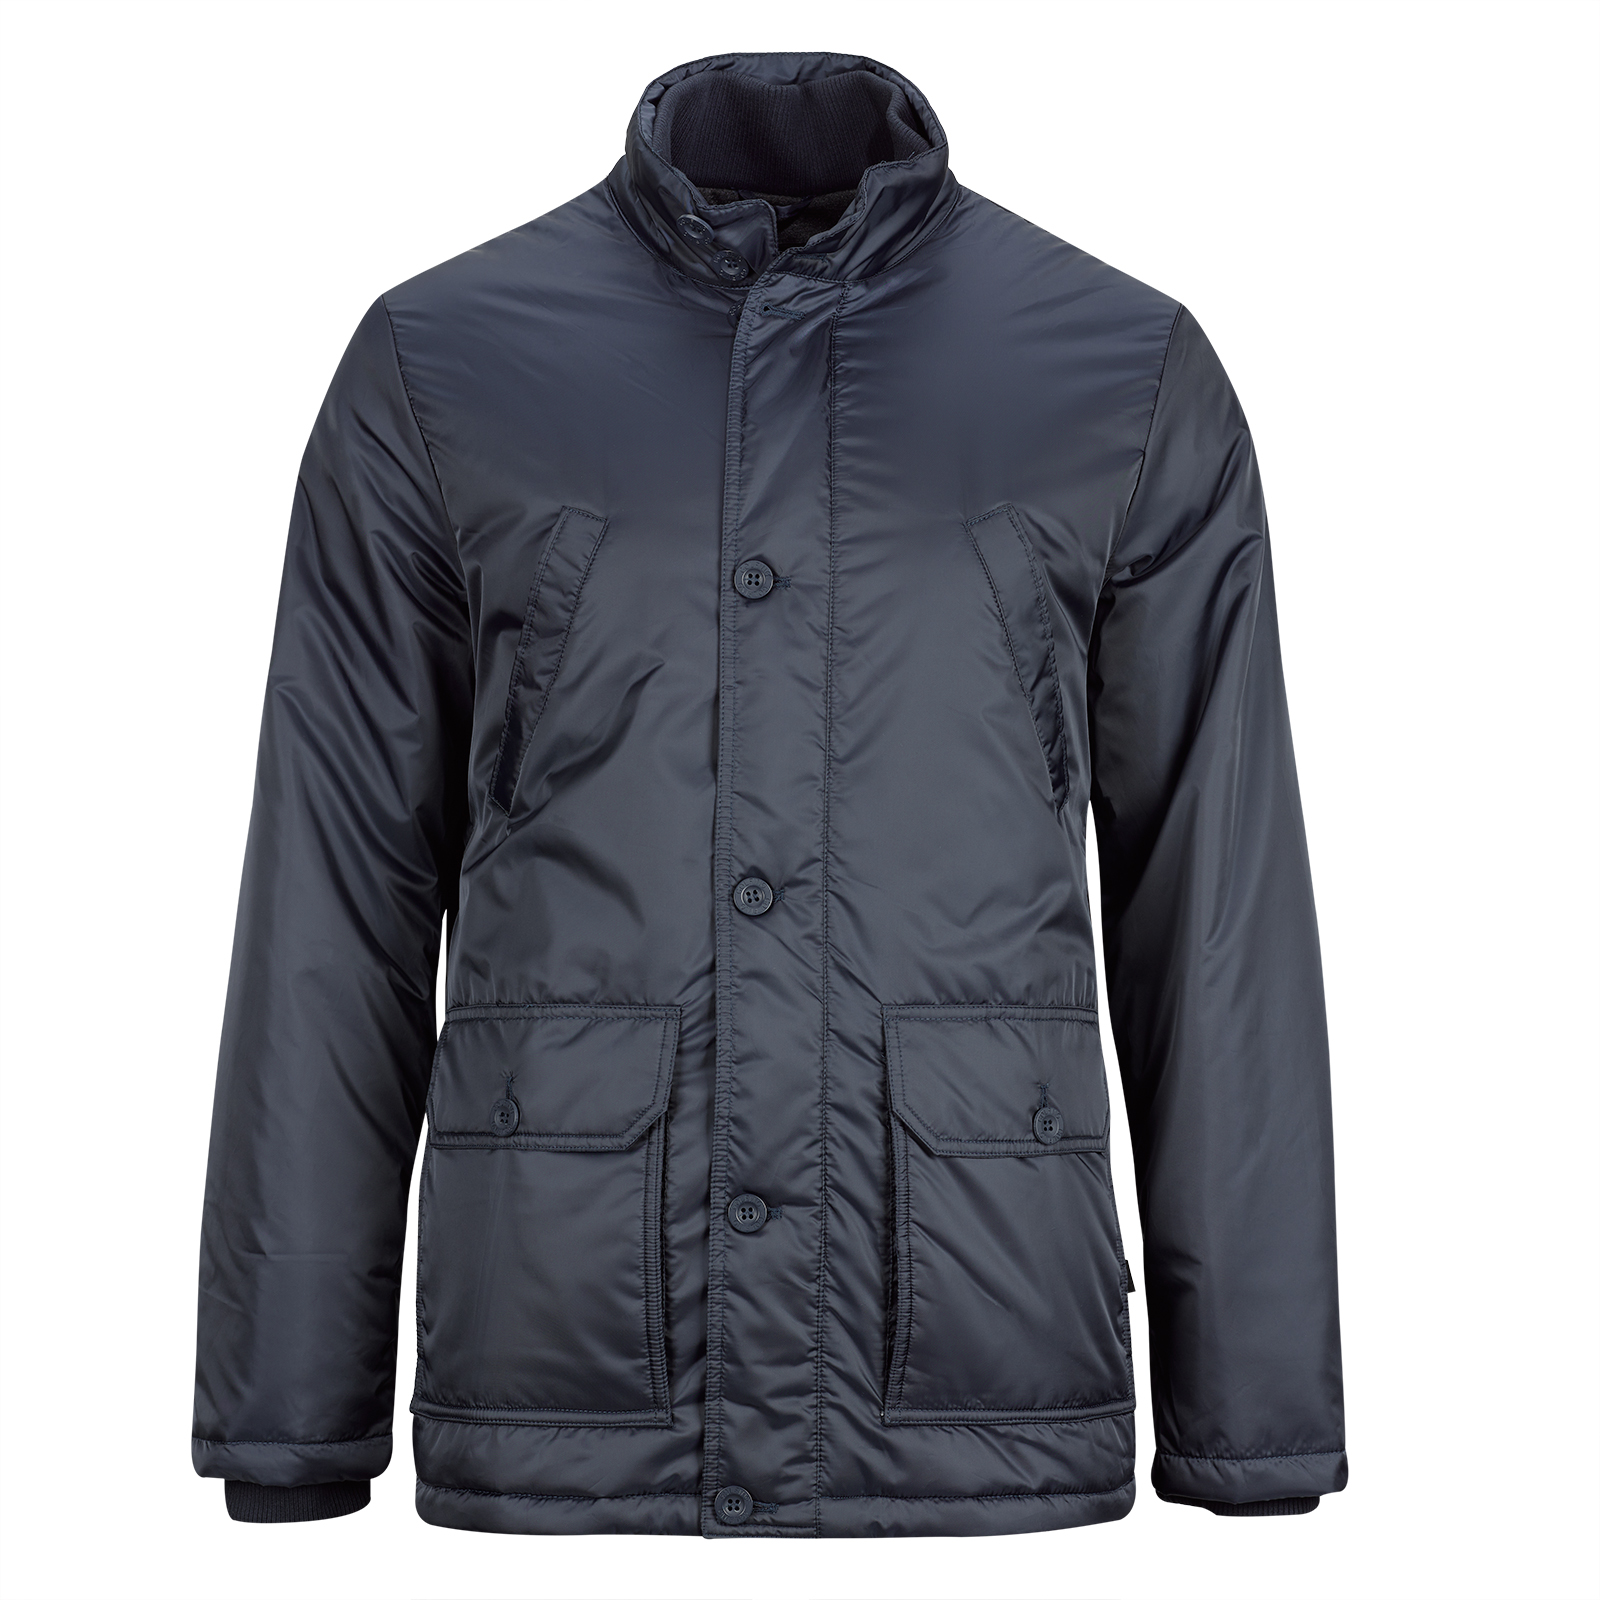 Men's micro stretch winter jacket with Cold Protection function